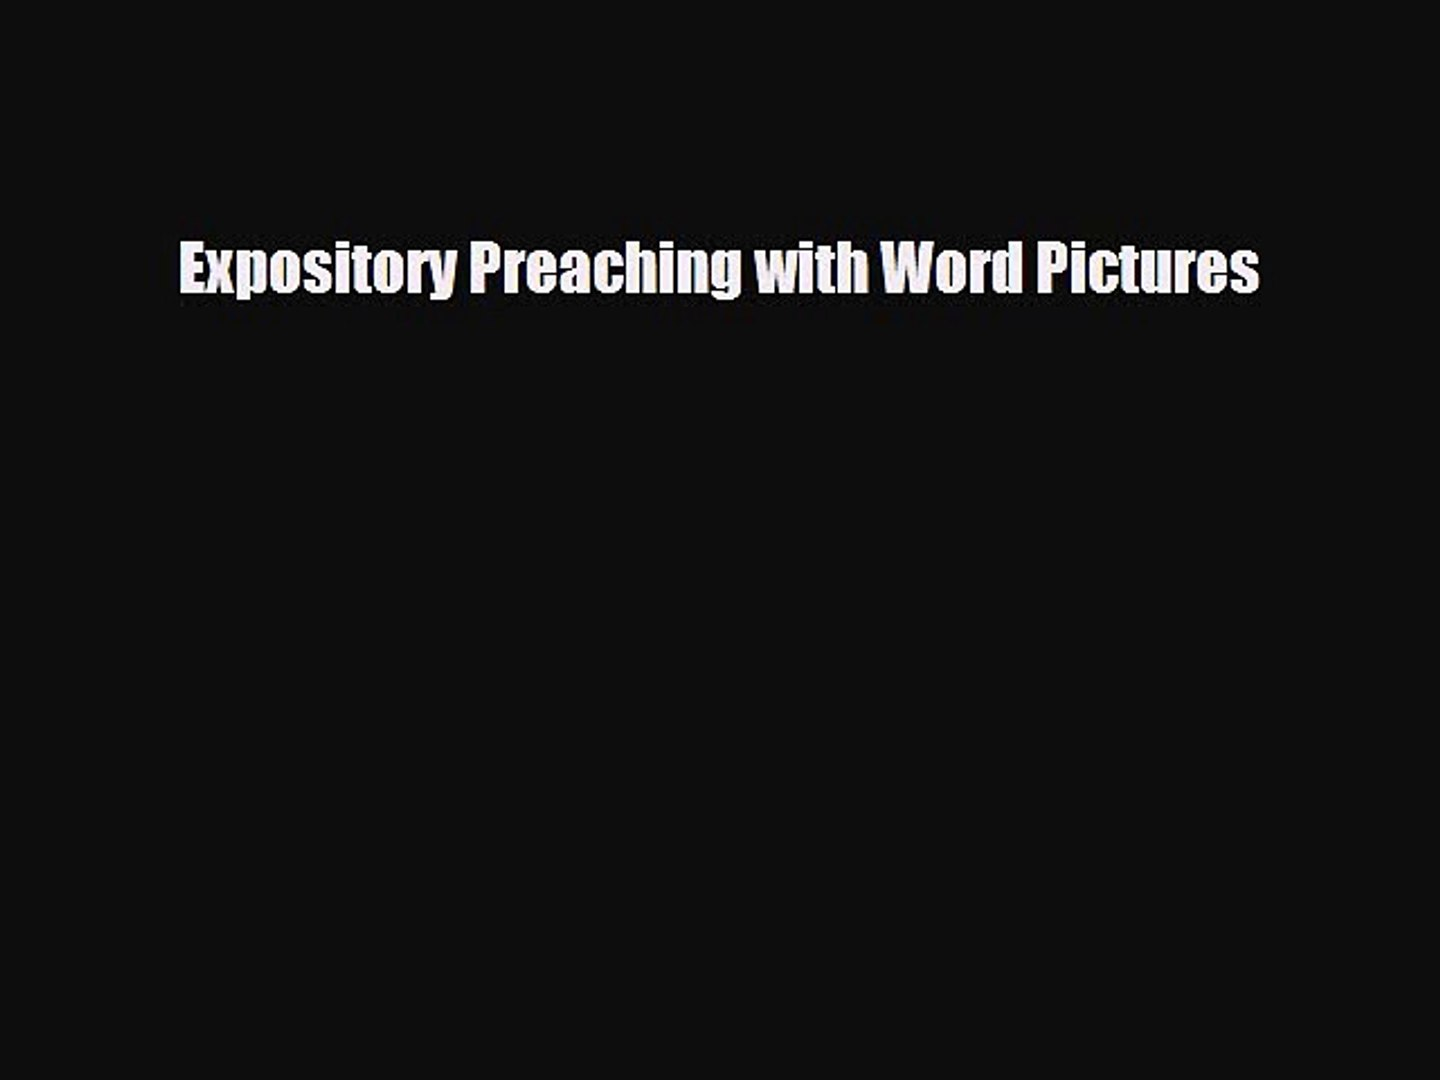 Expository Preaching with Word Pictures [PDF] Online